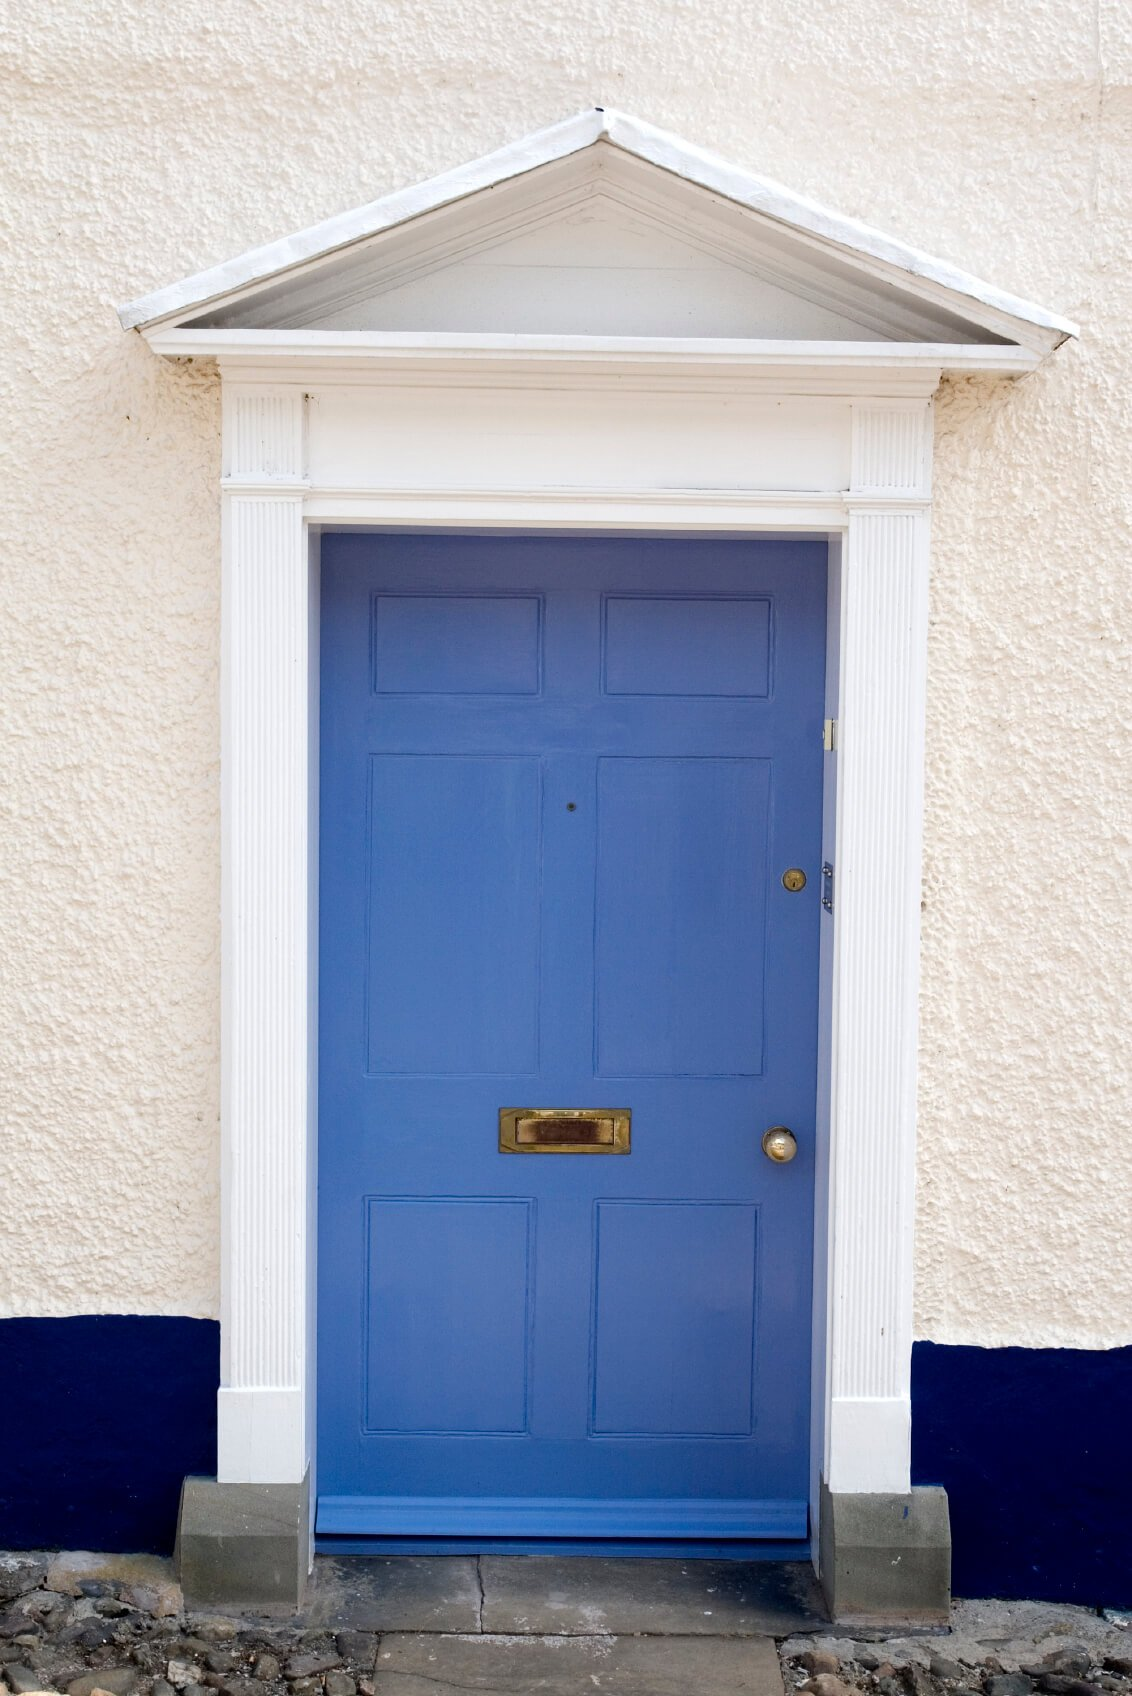 A blue front door situated on a front exterior wall of concrete which is painted white and navy blue.